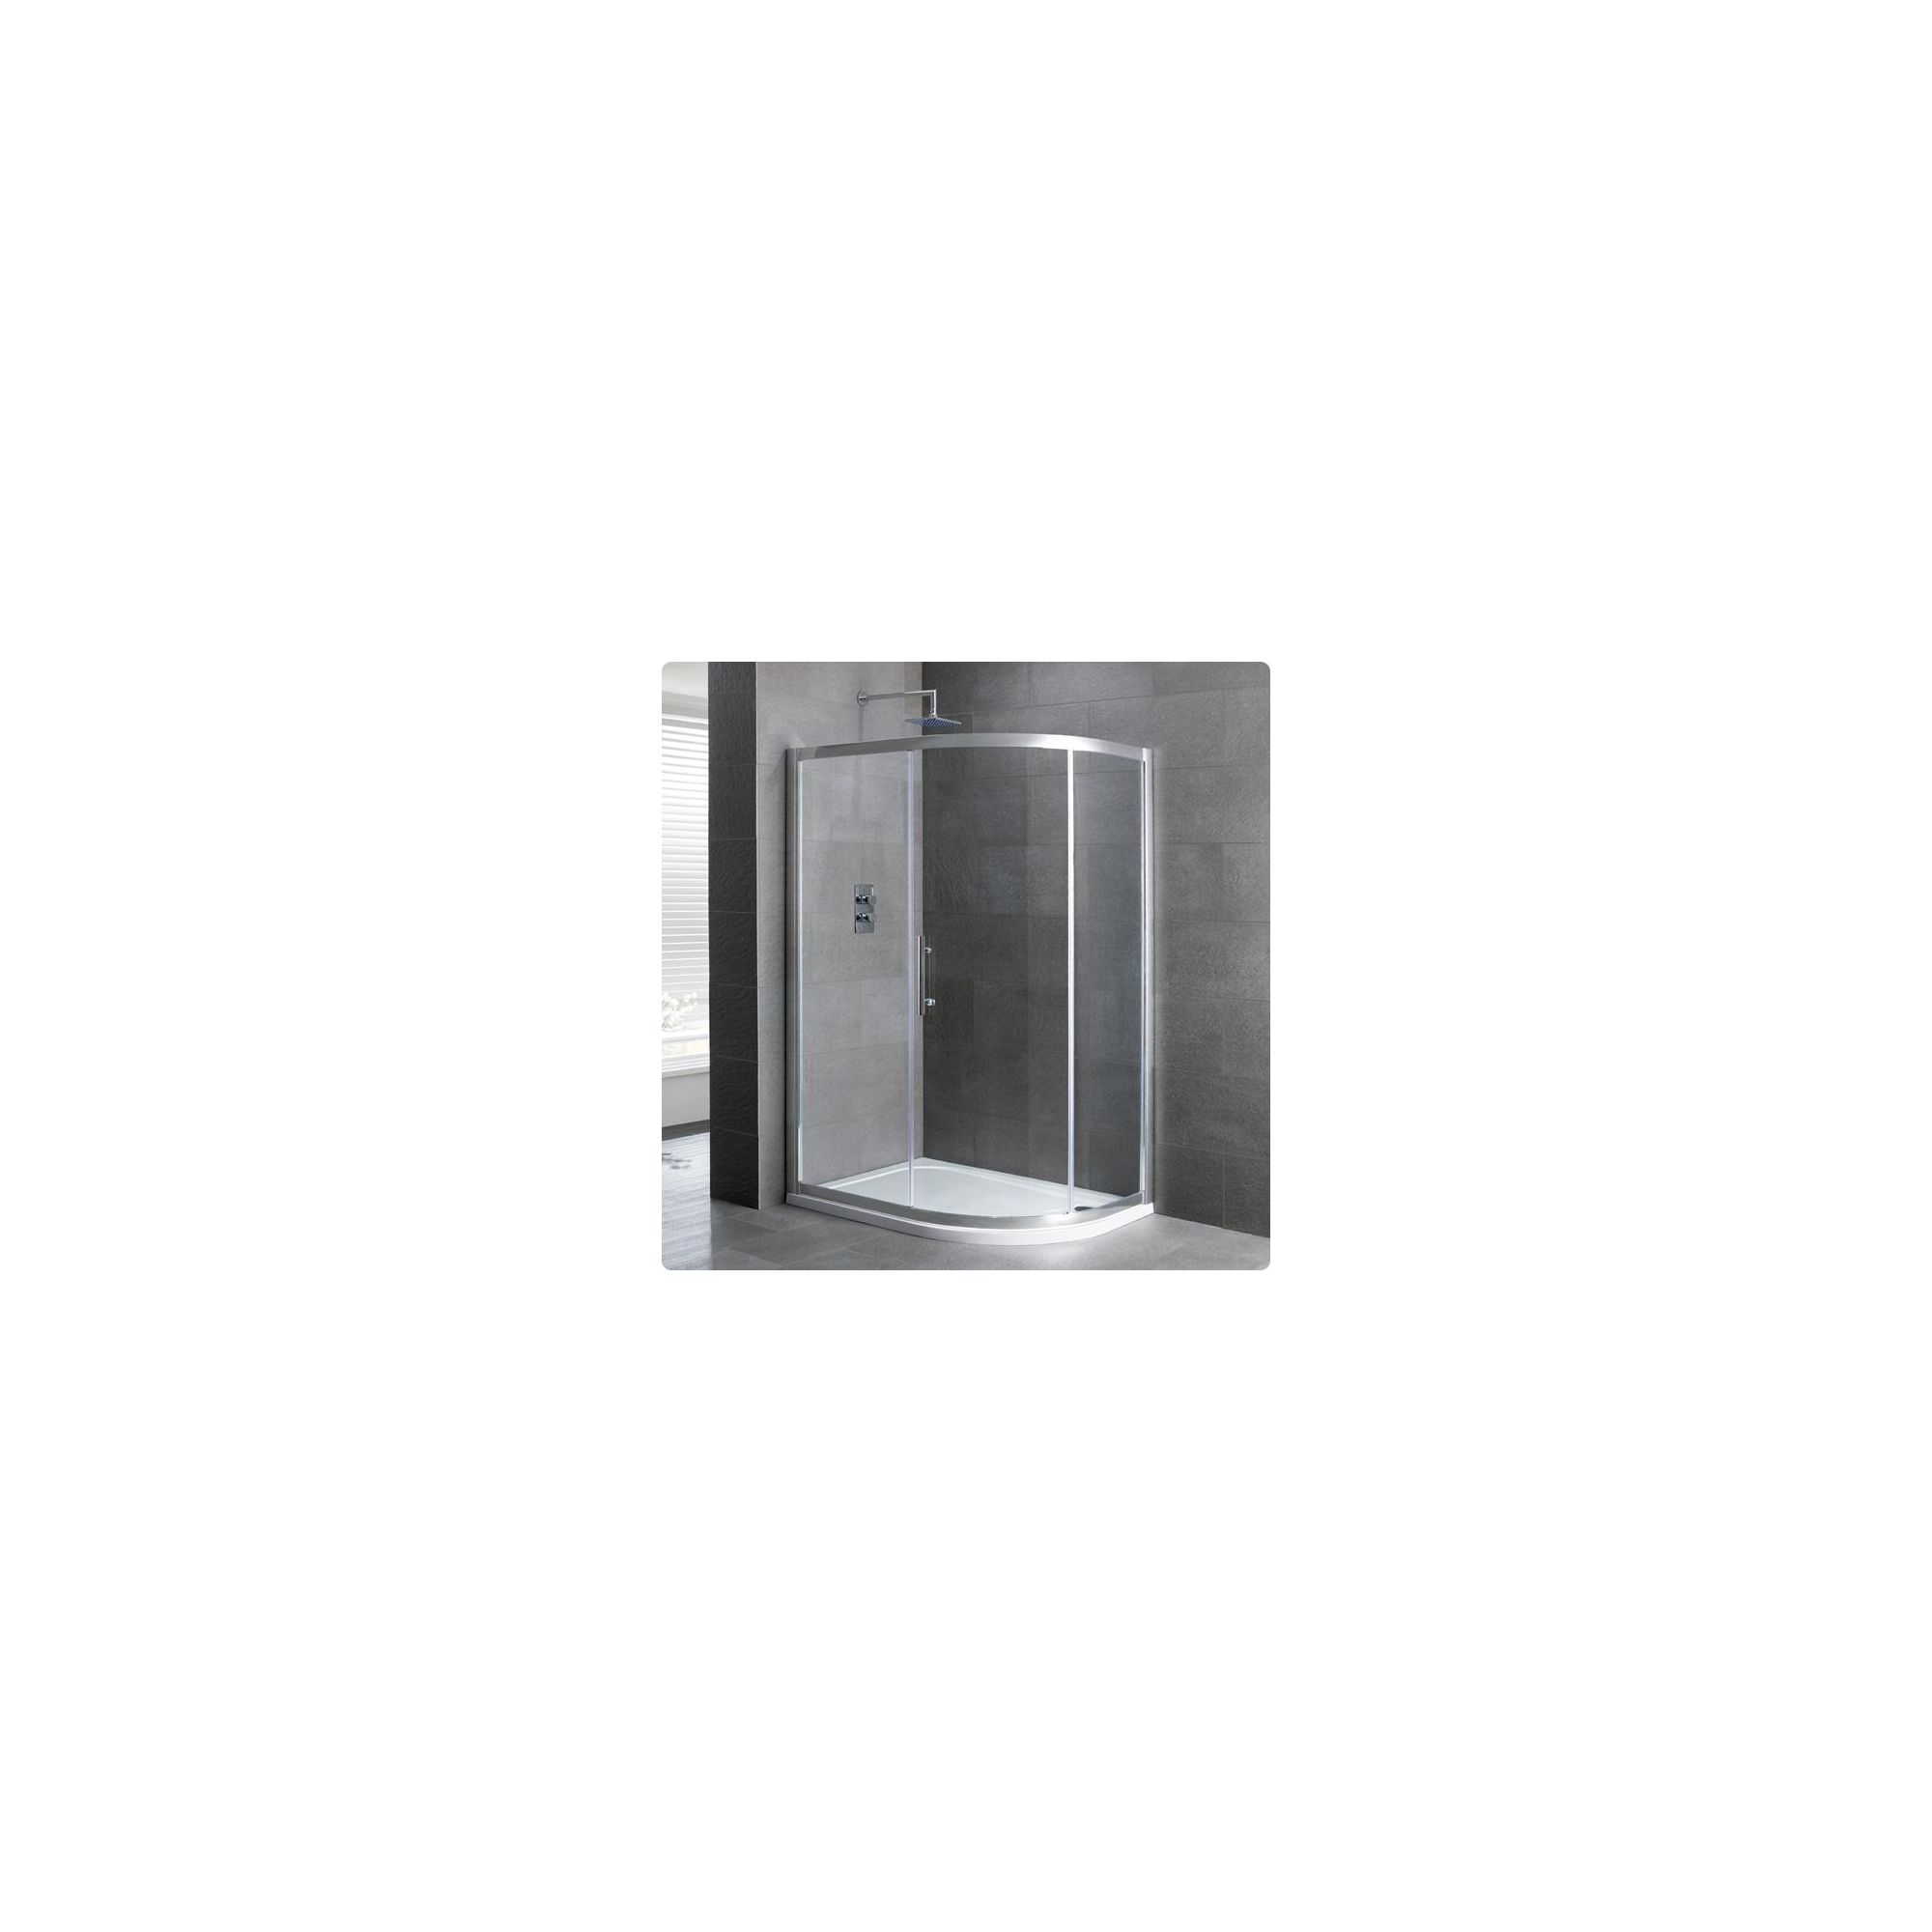 Duchy Select Silver 1 Door Offset Quadrant Shower Enclosure 1200mm x 760mm, Standard Tray, 6mm Glass at Tesco Direct